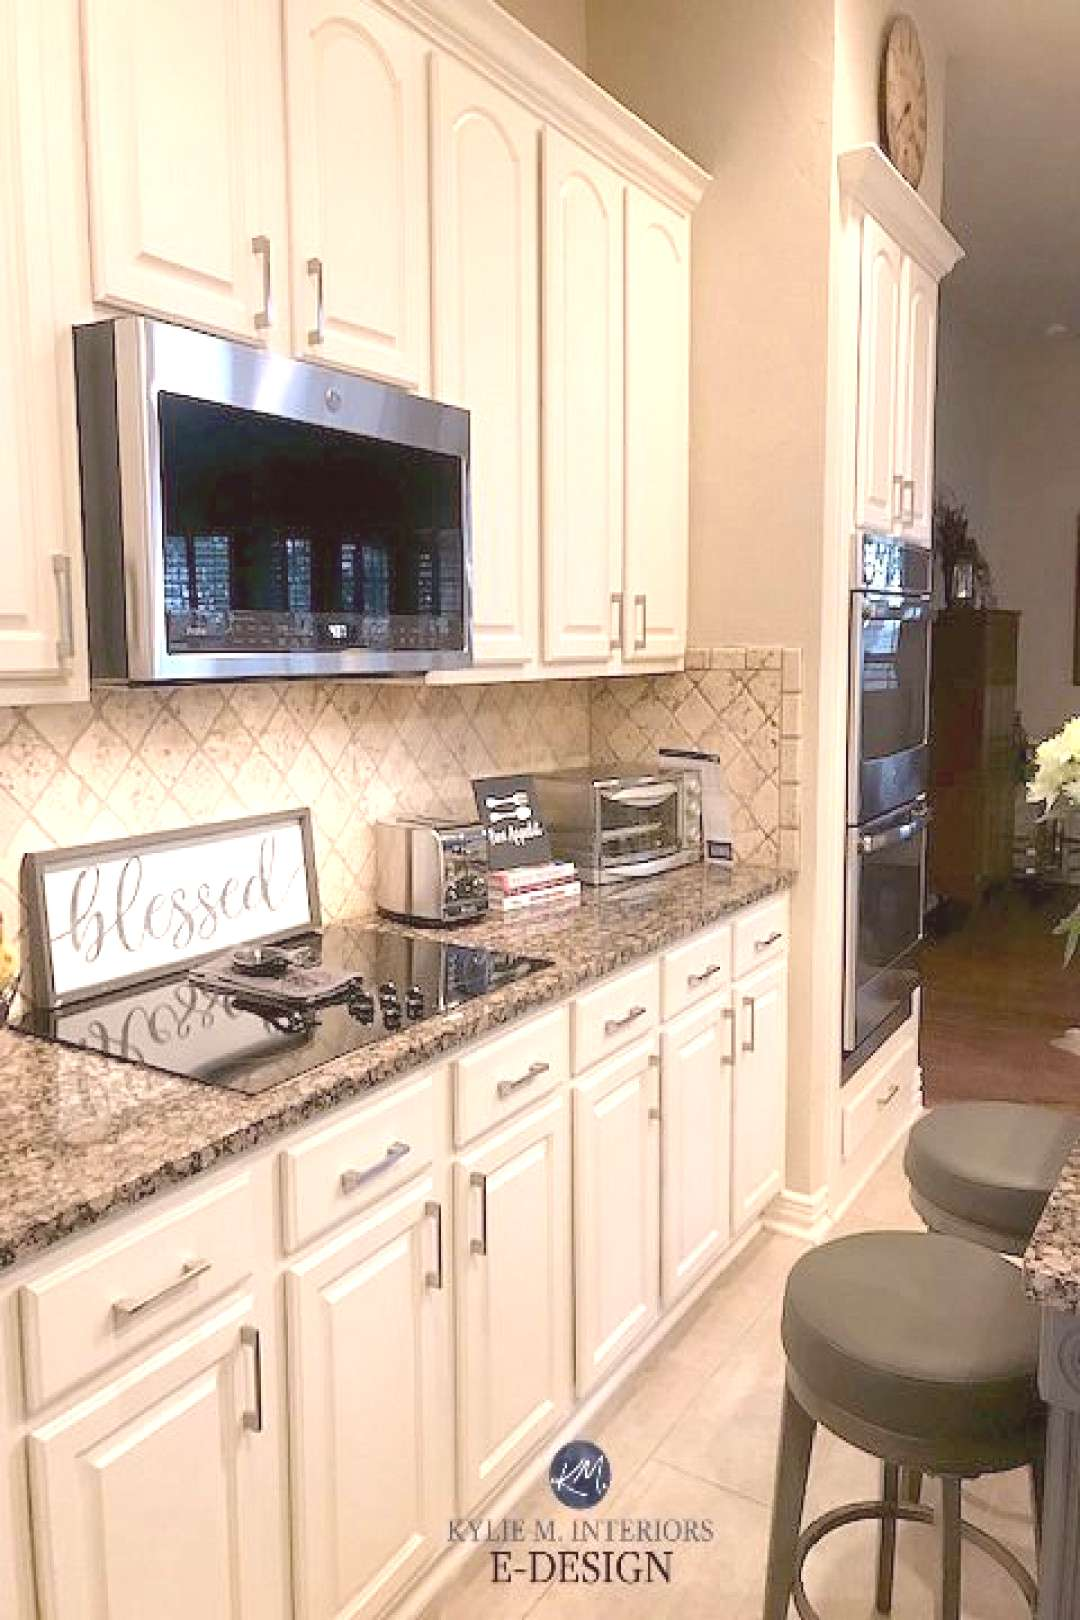 4 Ideas How to Update Oak or Wood Kitchen Cabinets#cabinets